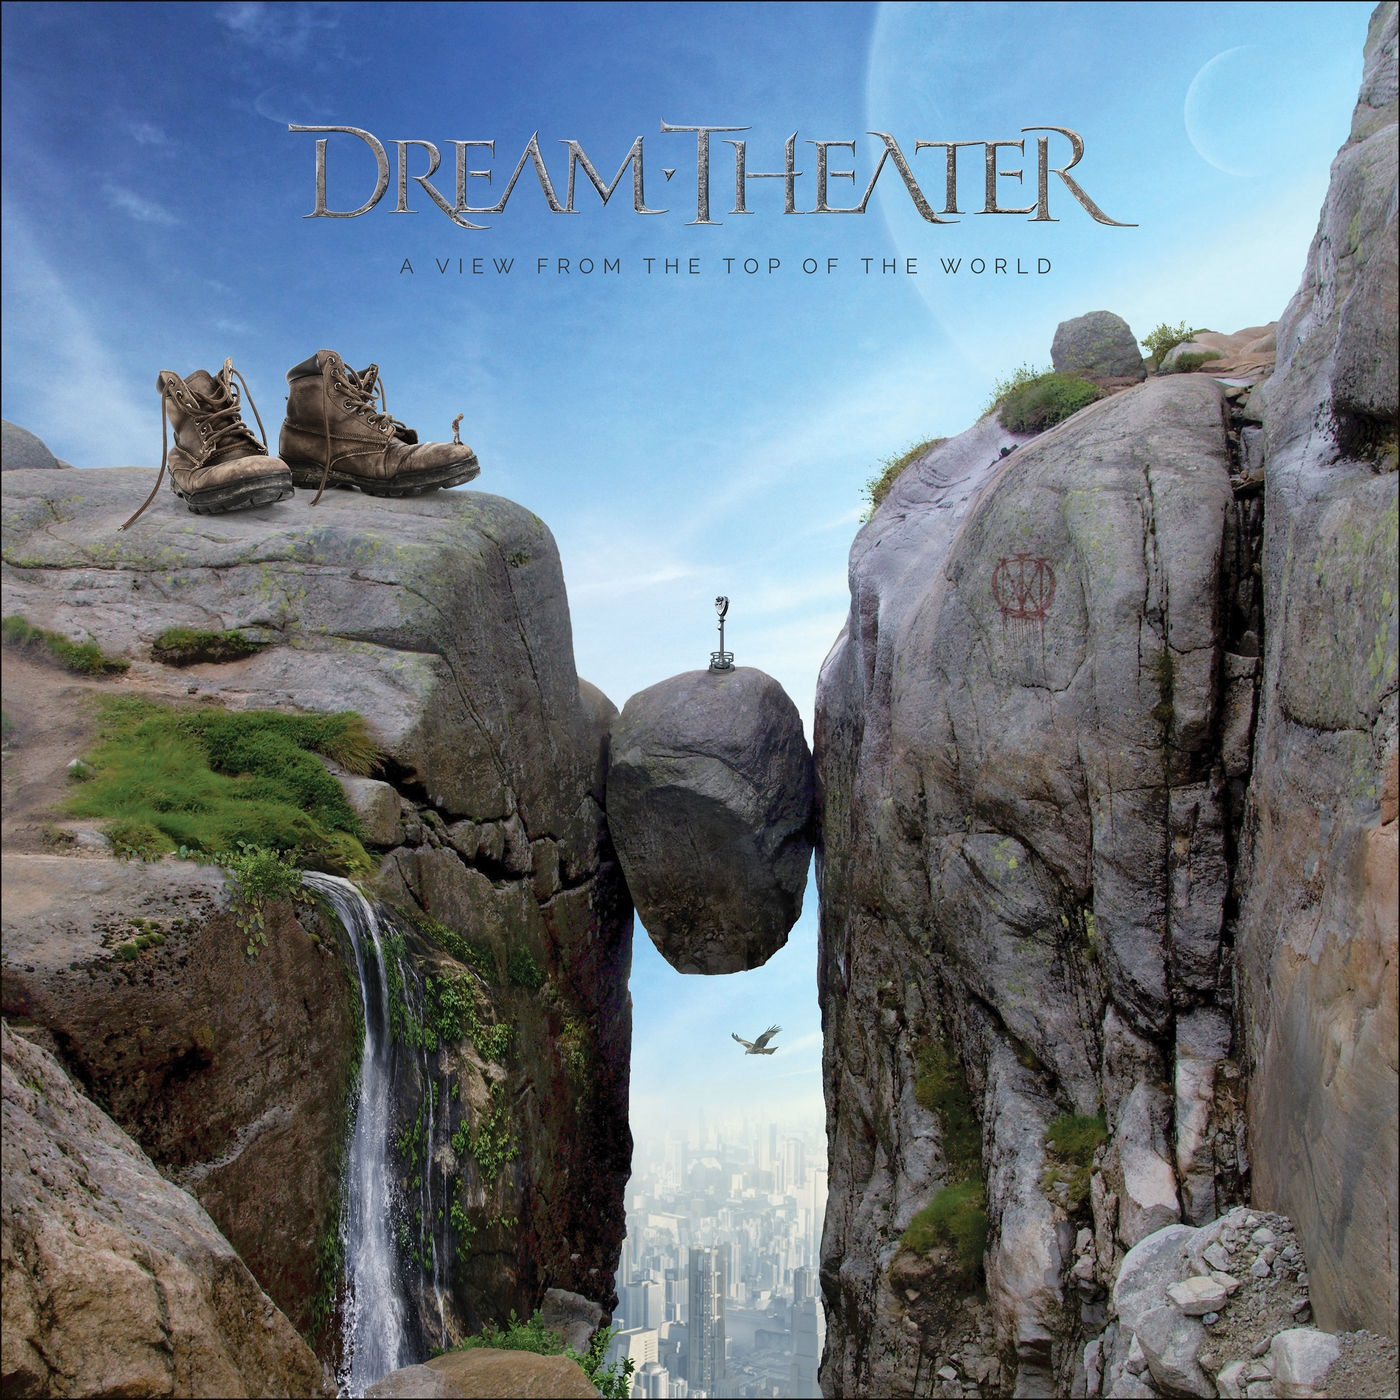 Dream Theater - A View From The Top Of The World (2021) Label: Inside Out Records